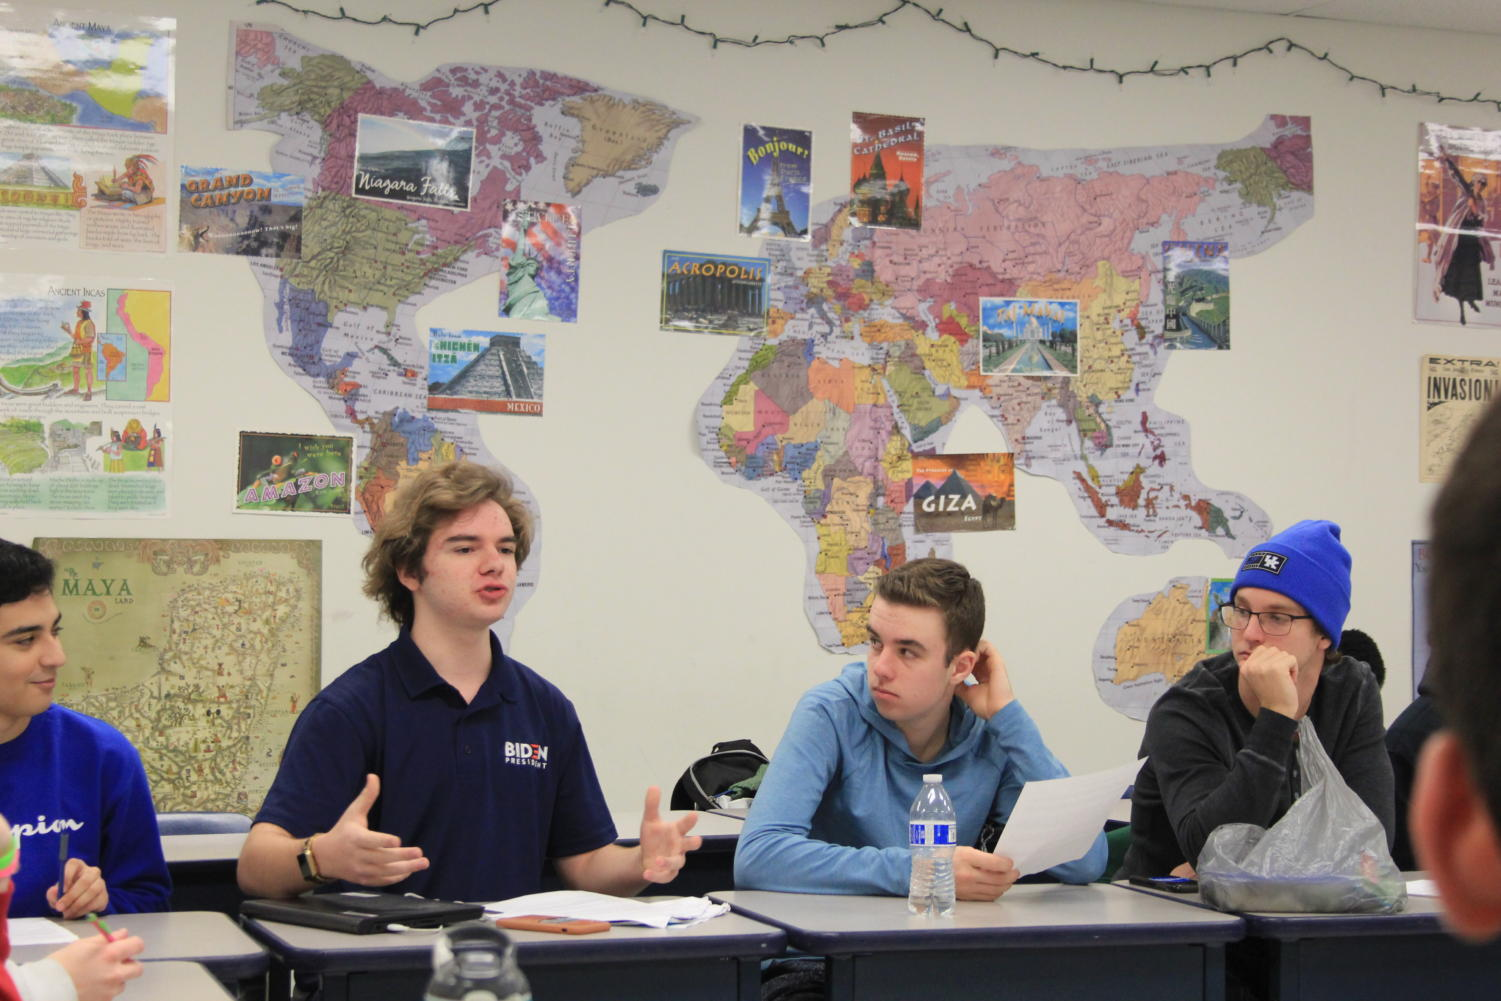 Students engage in discussion in Bauman's Politics and Conflict class.